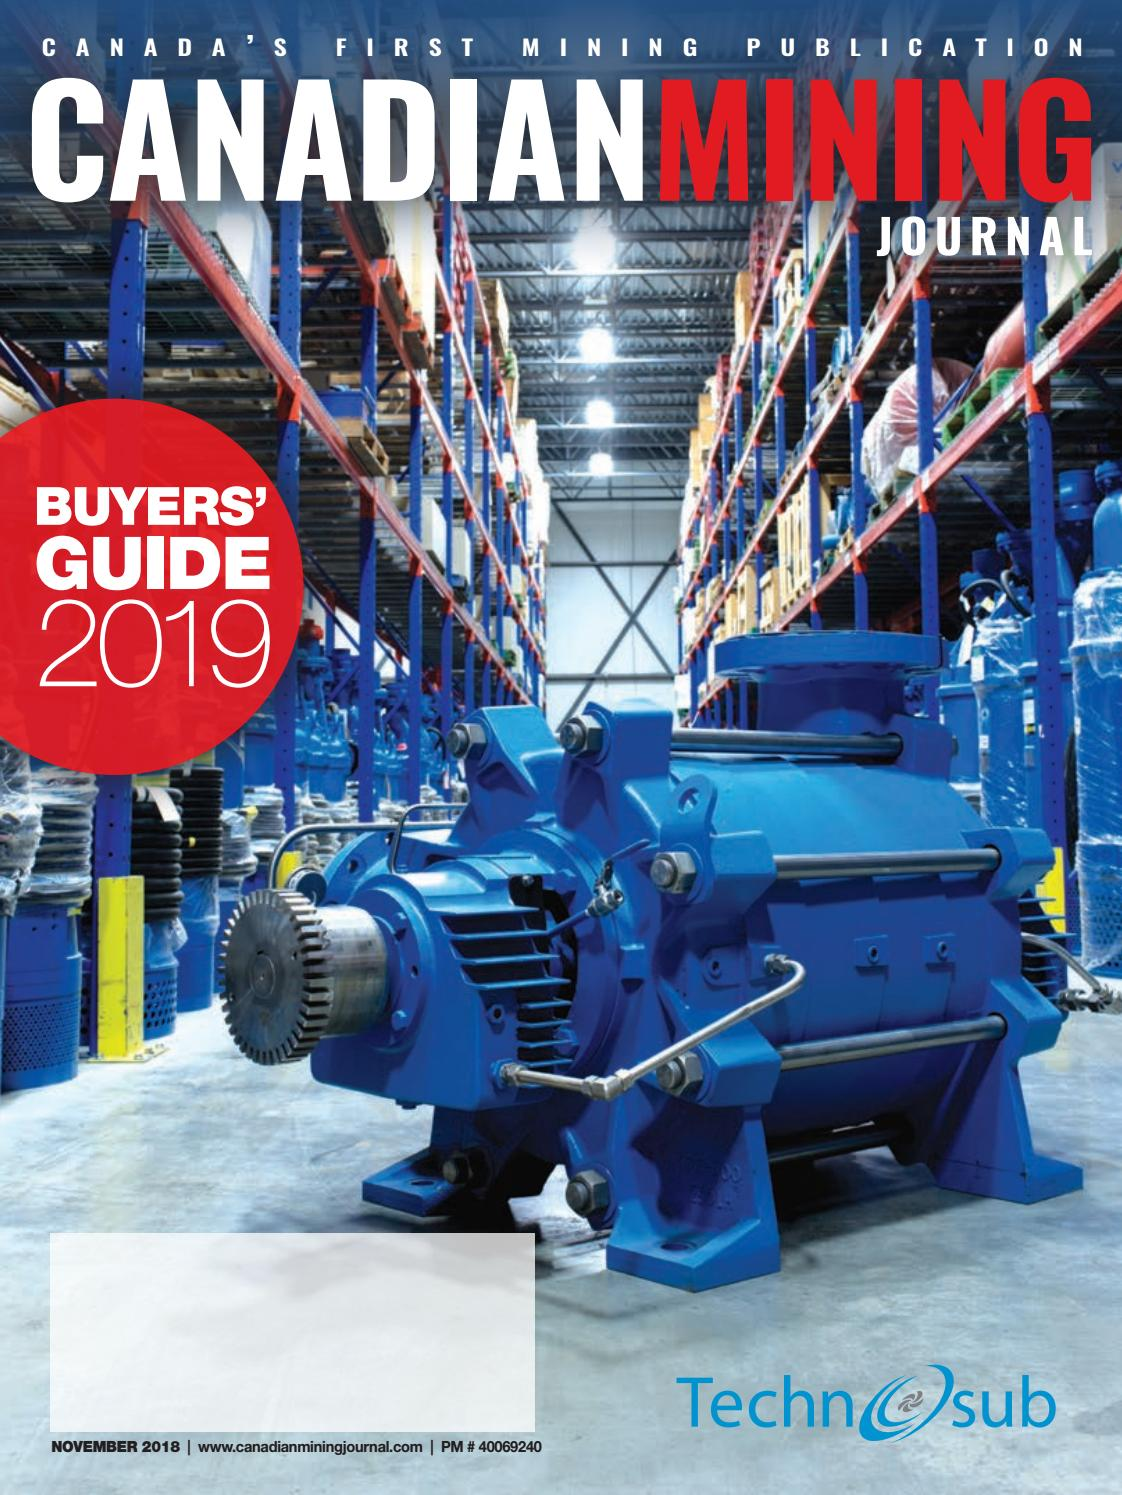 Canadian Mining Journal November 2018 By The Northern Miner Group Bell Micro Mb 102 Sewing Machine Threading Diagram Issuu